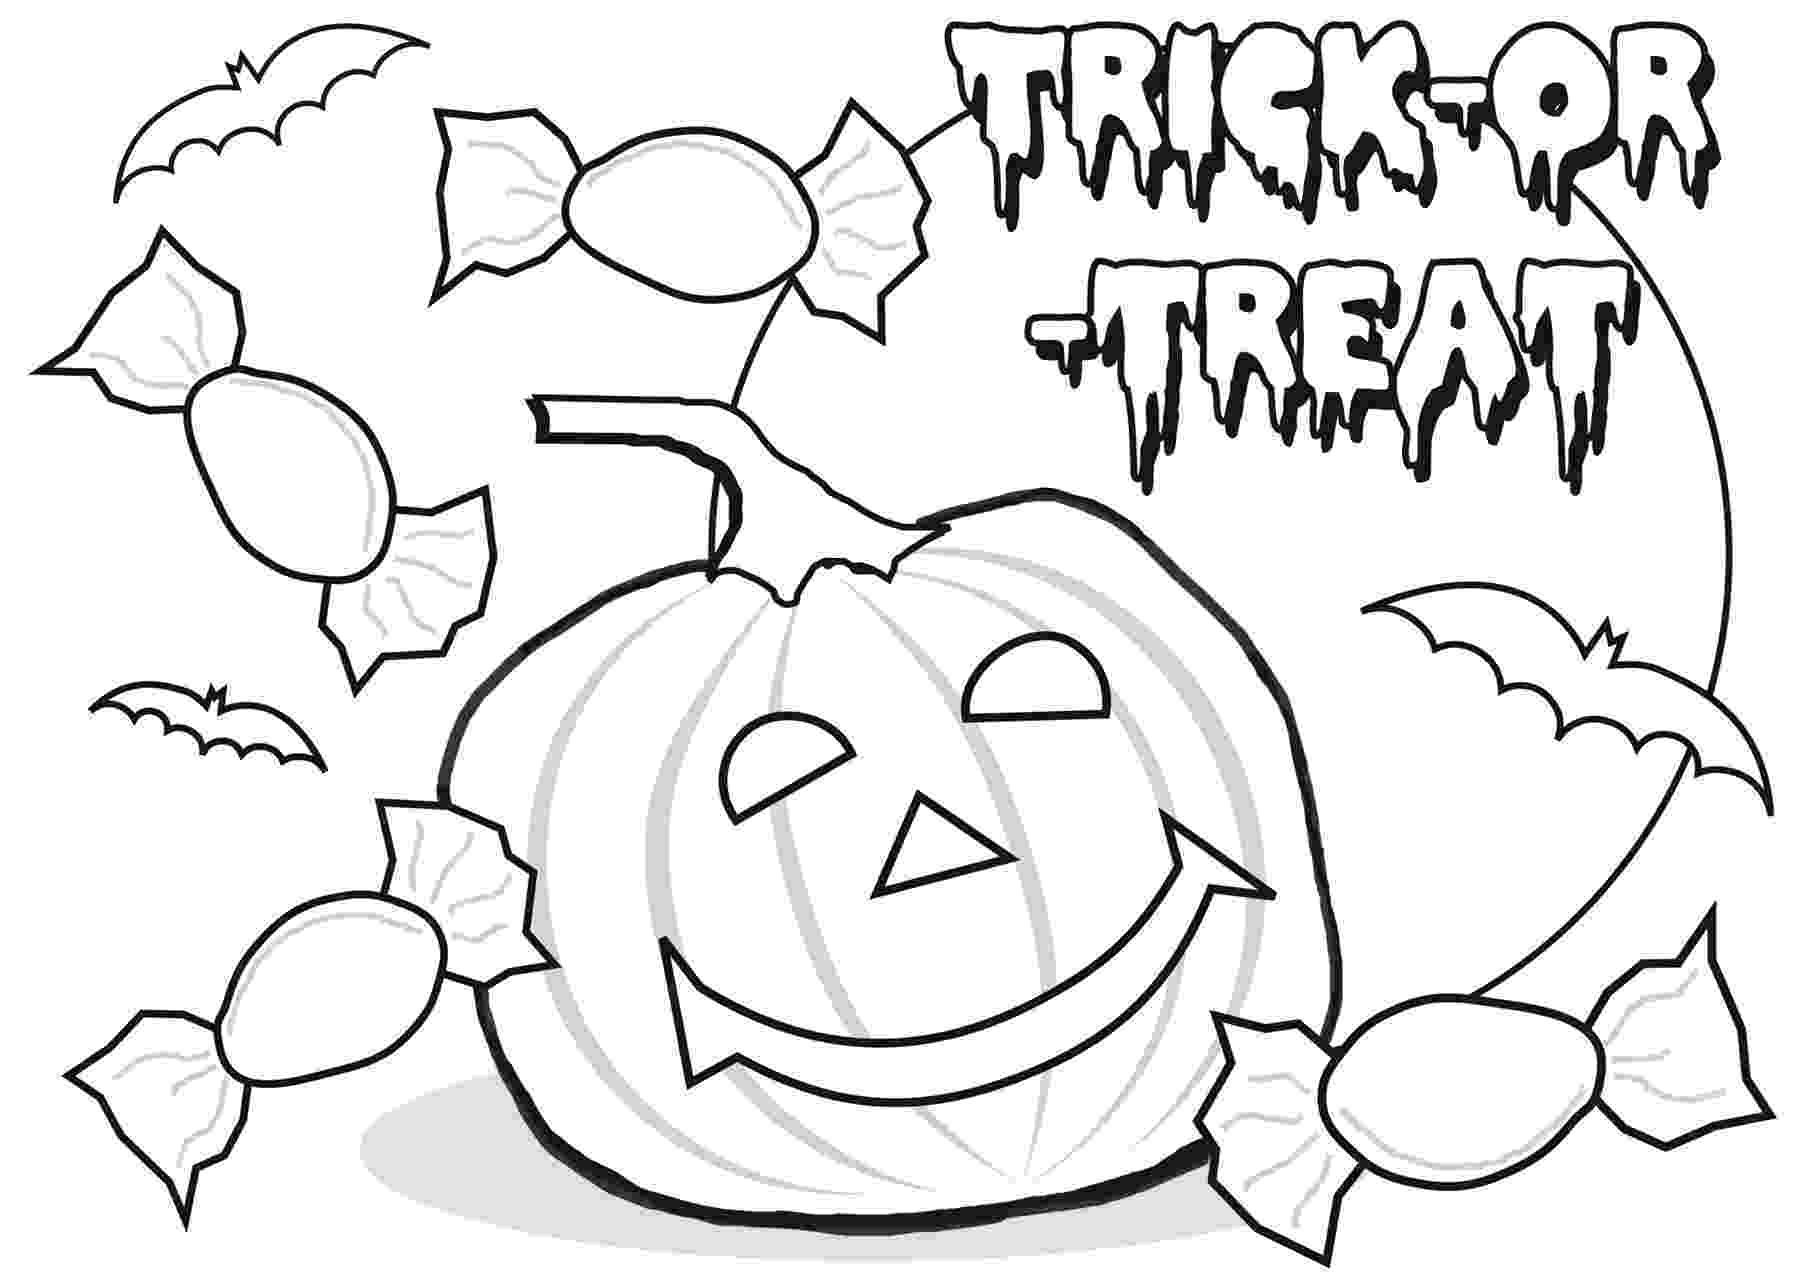 free n fun halloween coloring pages halloween coloring pages to download and print for free halloween fun coloring pages free n